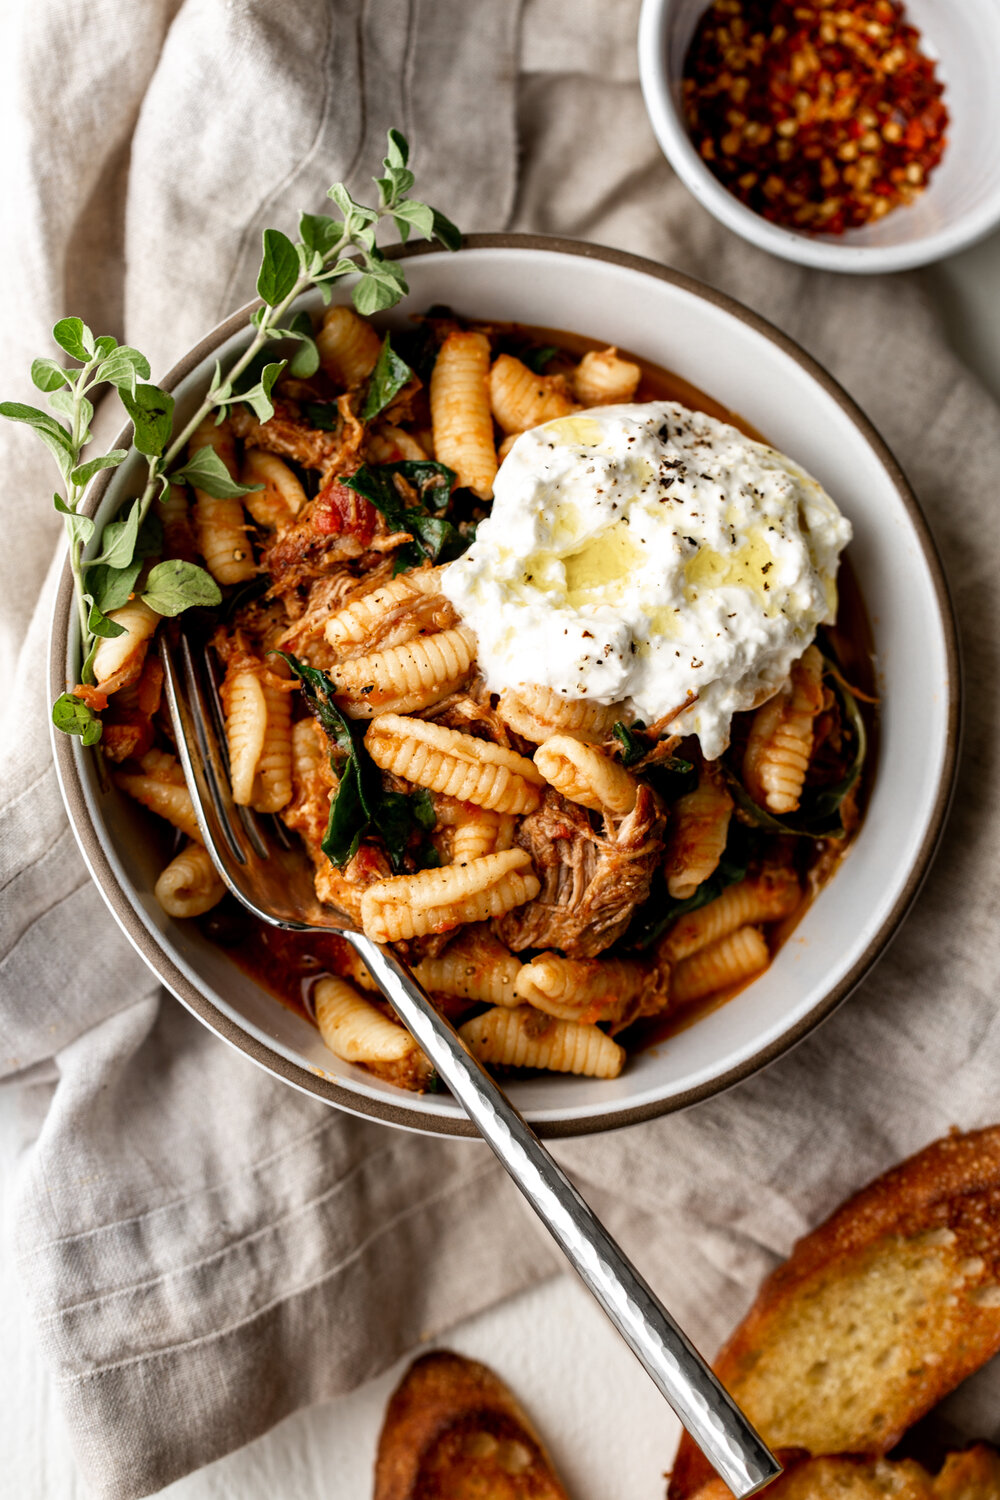 The braised pork ragù is served over pasta and topped with creamy burrata cheese for one of my favorite hearty meals for a cozy night in.